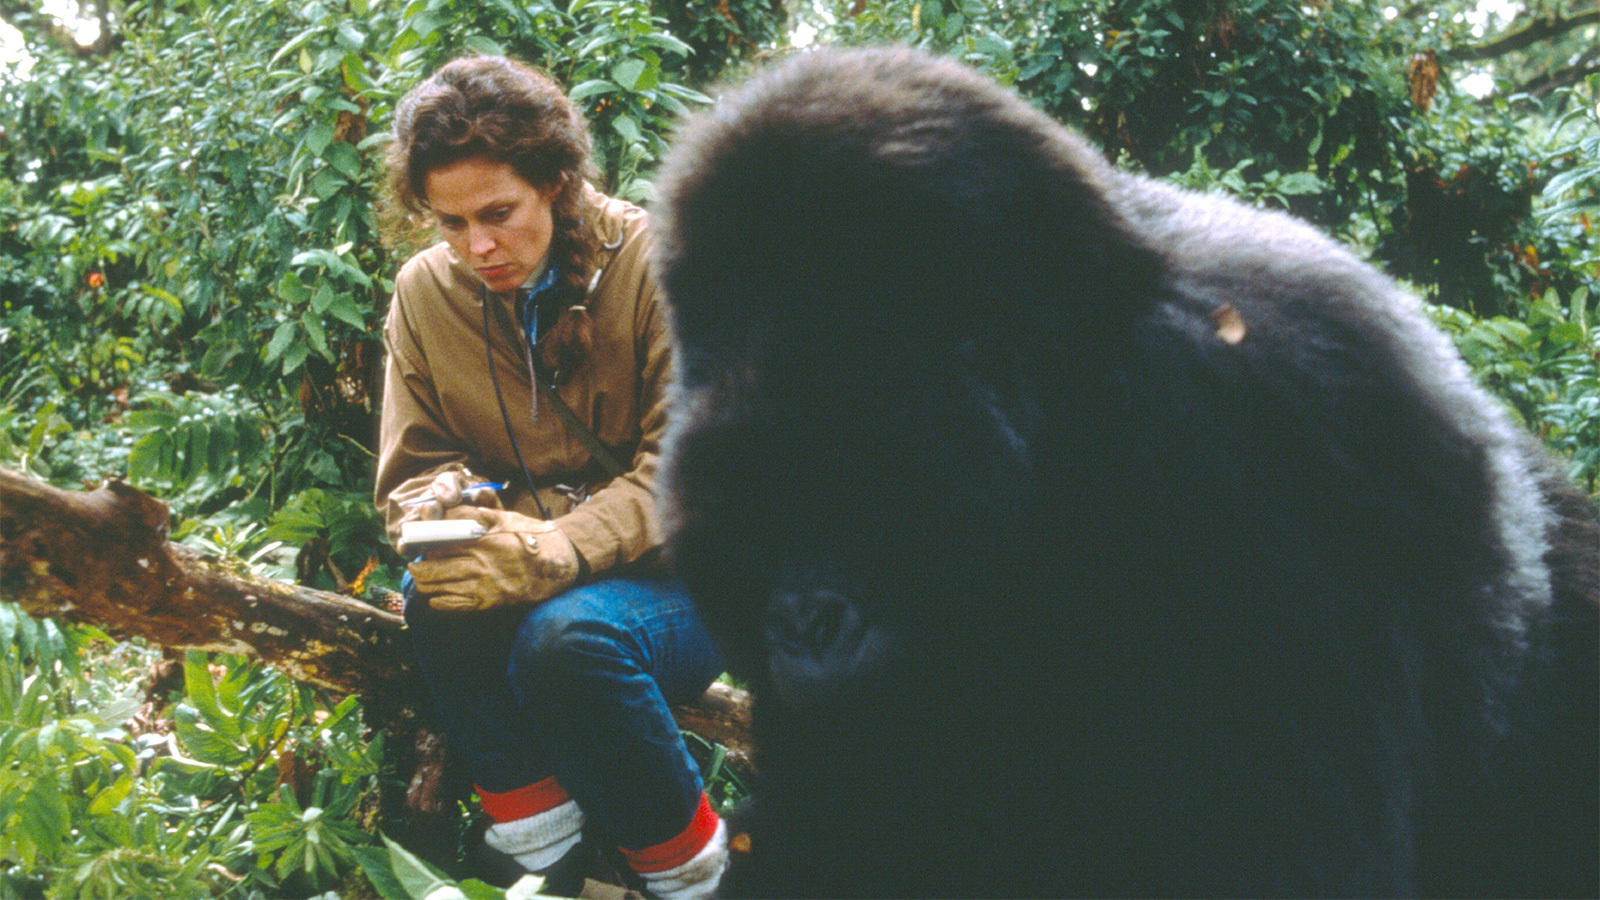 Sigourney Weaver and John Alexander in Gorillas in the Mist: The Story of Dian Fossey (1988)